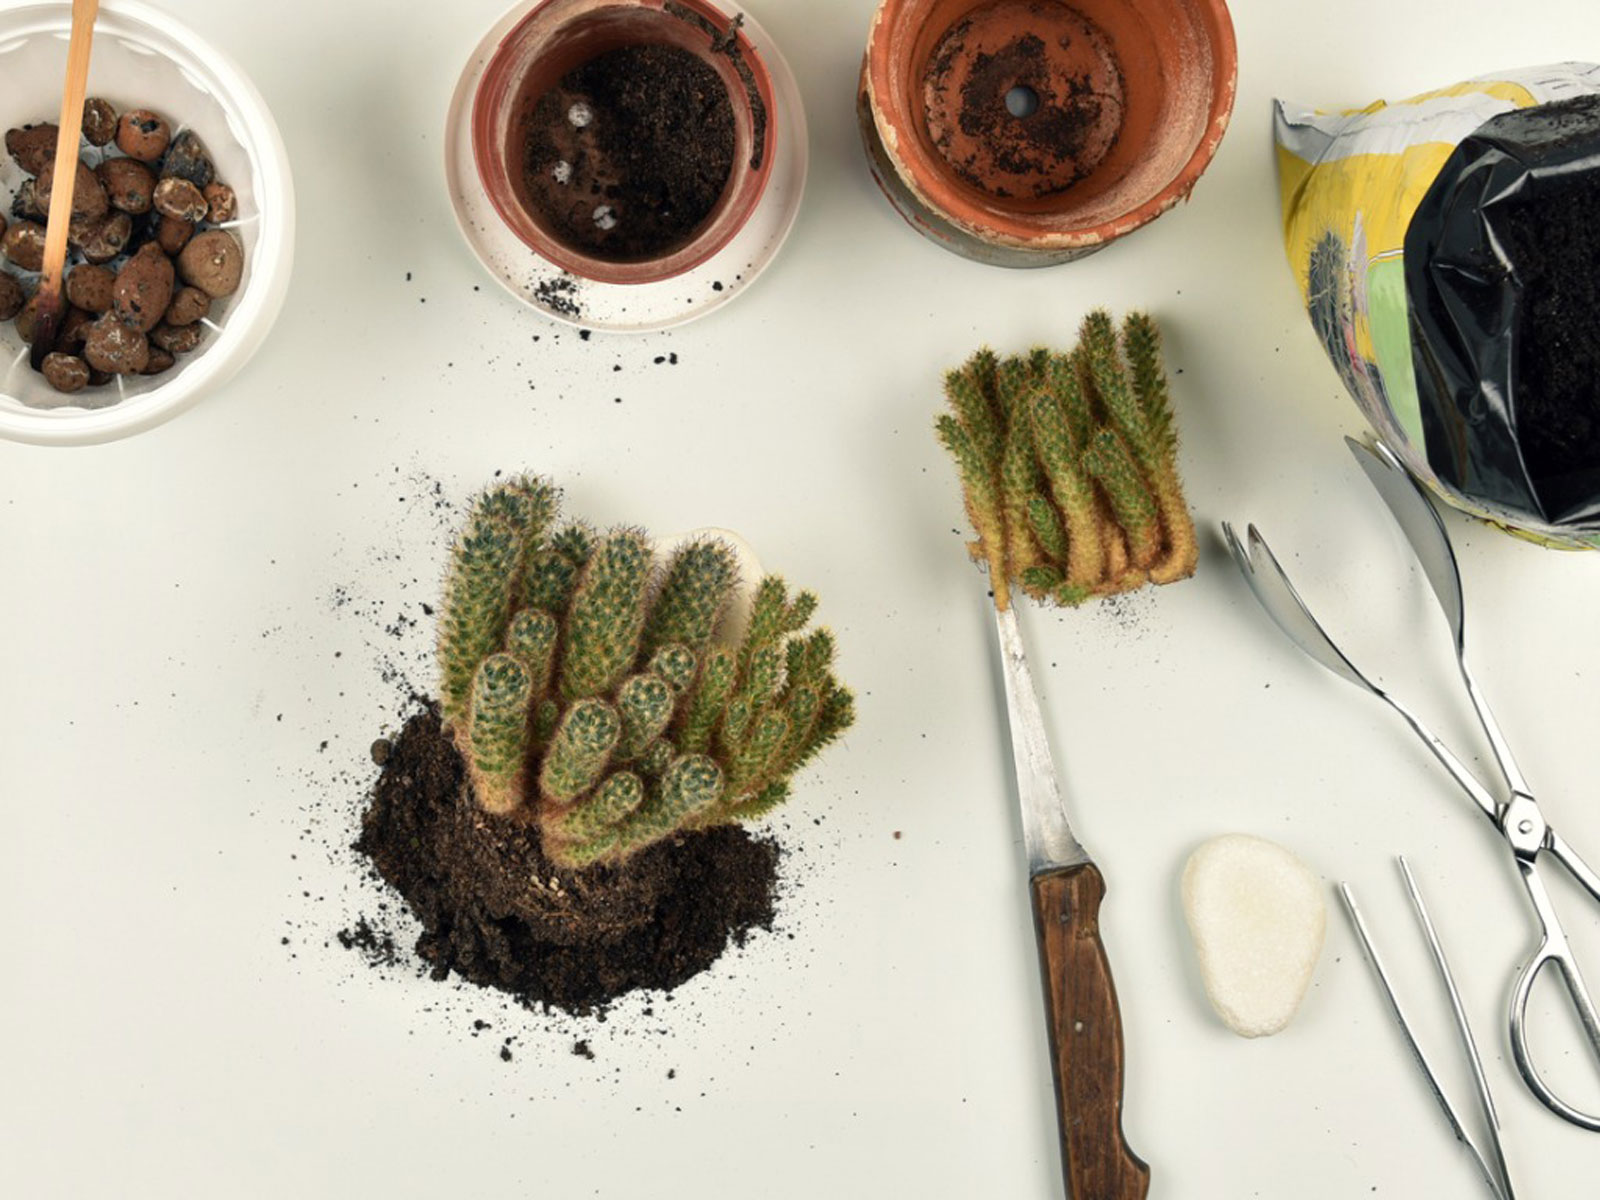 Repotting Cactus Tips How And When To Repot A Cactus Plant